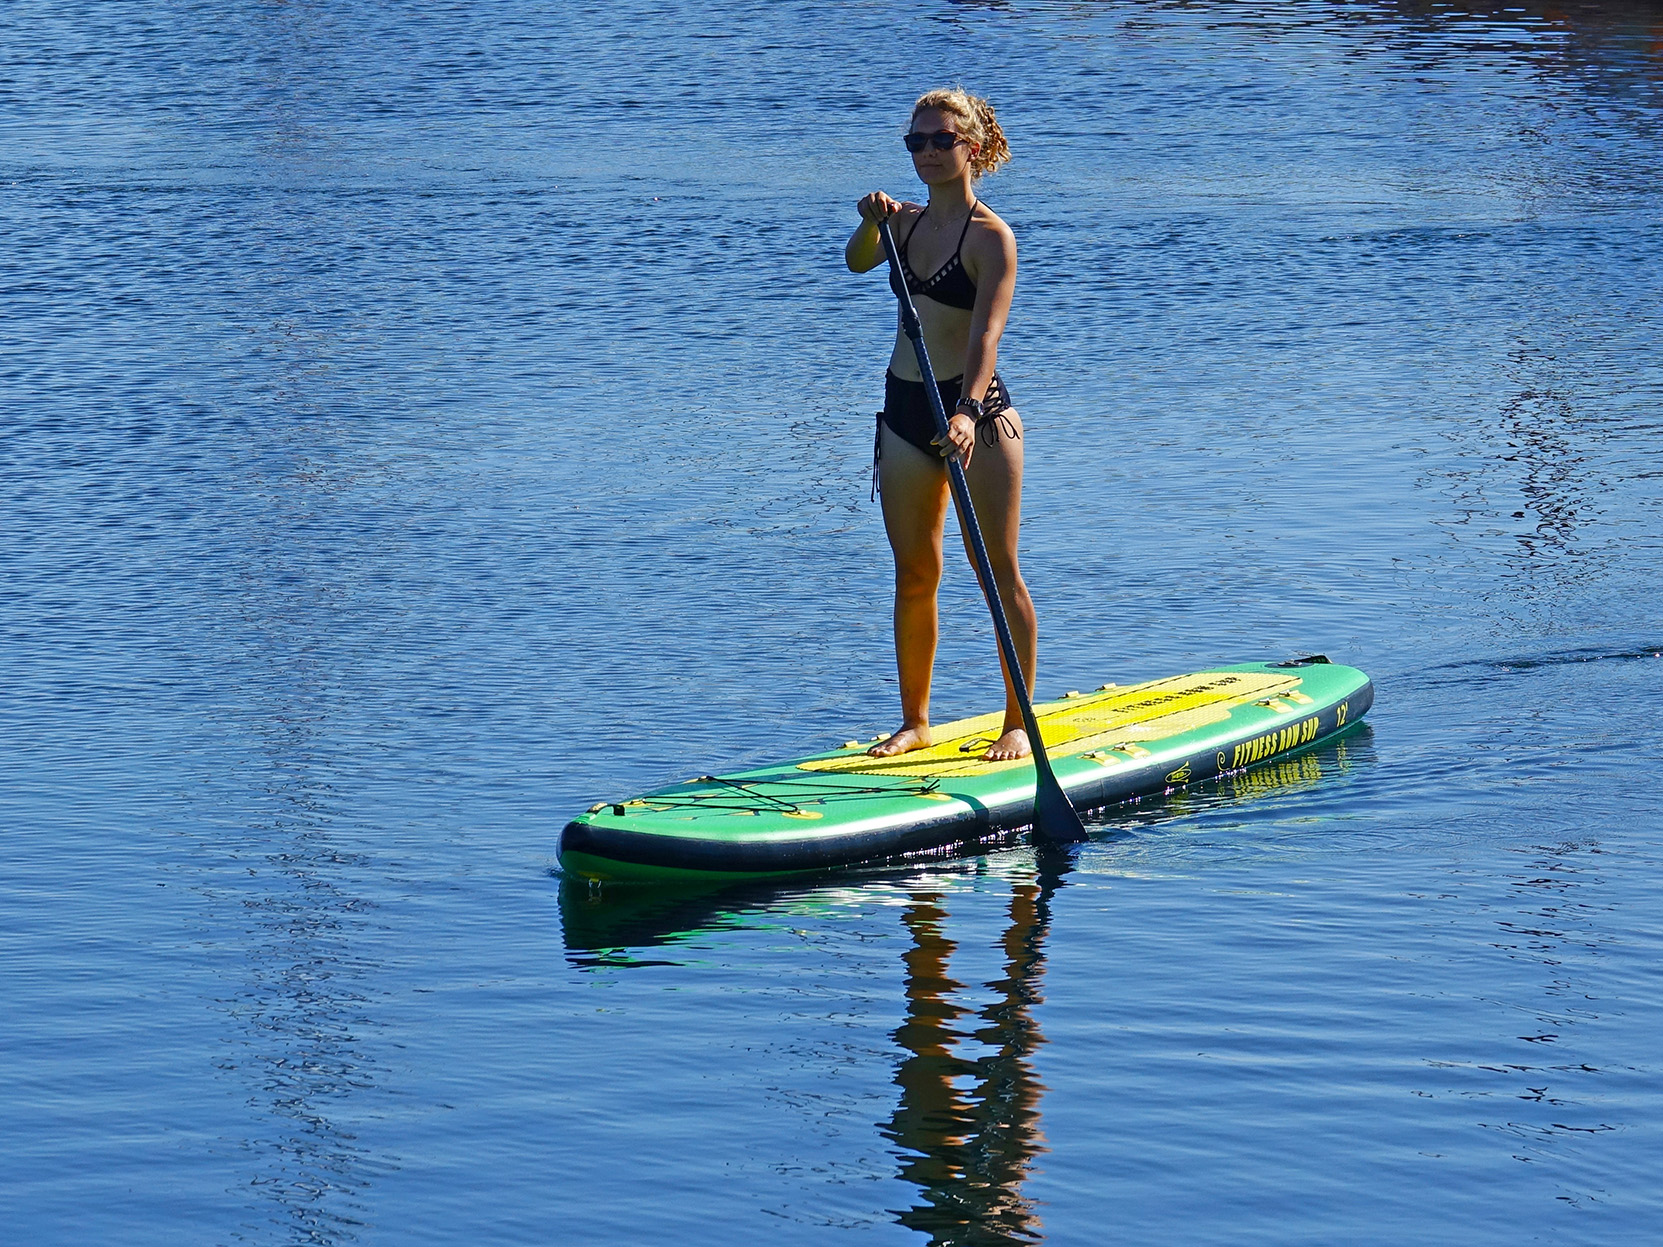 oar-board-stand-up-paddle-board-rower-whitehall-rowing-and-sail-DSC09683-Kess-Blog